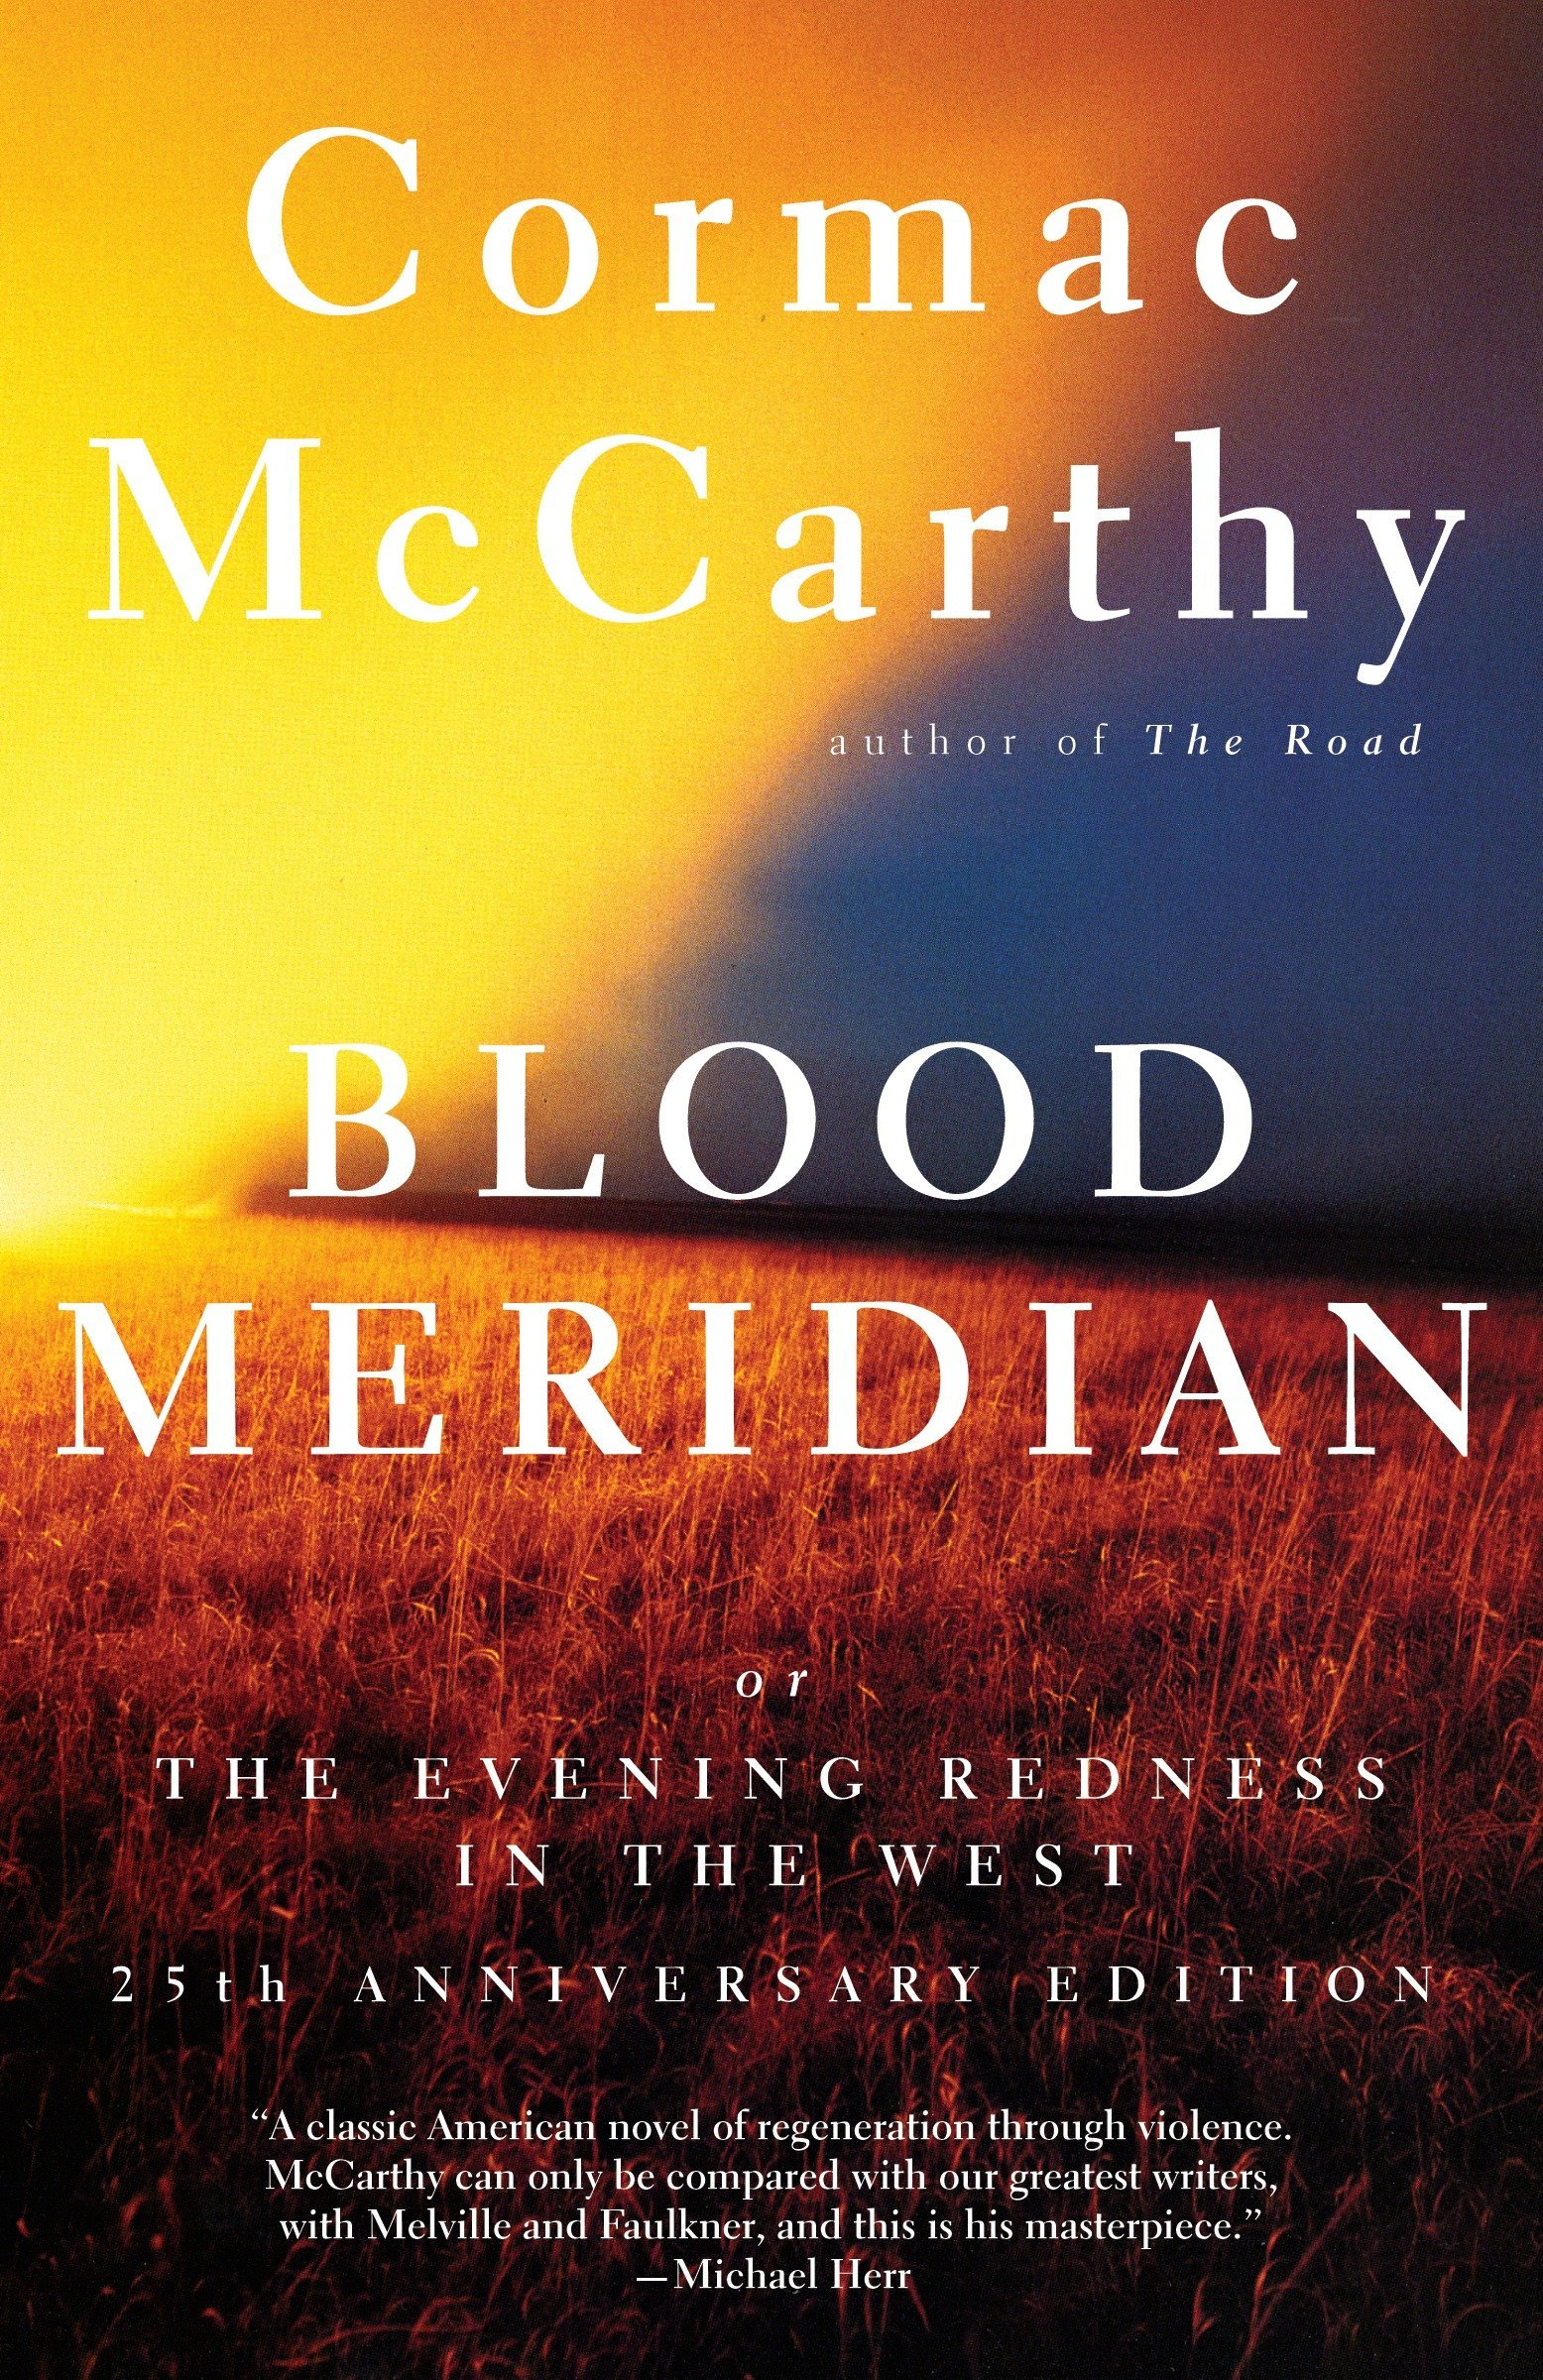 """12) Blood Meridian - Cormac McCarthy is one of if not the best living author, but you probably already knew that. His undisputed masterpiece, Blood Meridian is an exceptionally unique novel that follows a character named """"the kid"""" who falls in with a band of Native American scalp hunters along the Texas-Mexico border. Blood Meridian has no real protagonist (or at the very least there's no internal dialogue for the protagonist), and the antagonist, while incredibly potent, has the truth depth of his vileness buried in the subtleties and themes of the story. These warped character roles are some of the many tools used to drive home concepts of manifest destiny, the corruption of the American dream, and the abstract yet complete death of people and places. Blood Meridian is so incredible because it's so many things - it lives in a space of multiple genres while incorporating and manipulating a universally resonant scope. Truthfully, it has a case for being the best novel of the 20th century."""